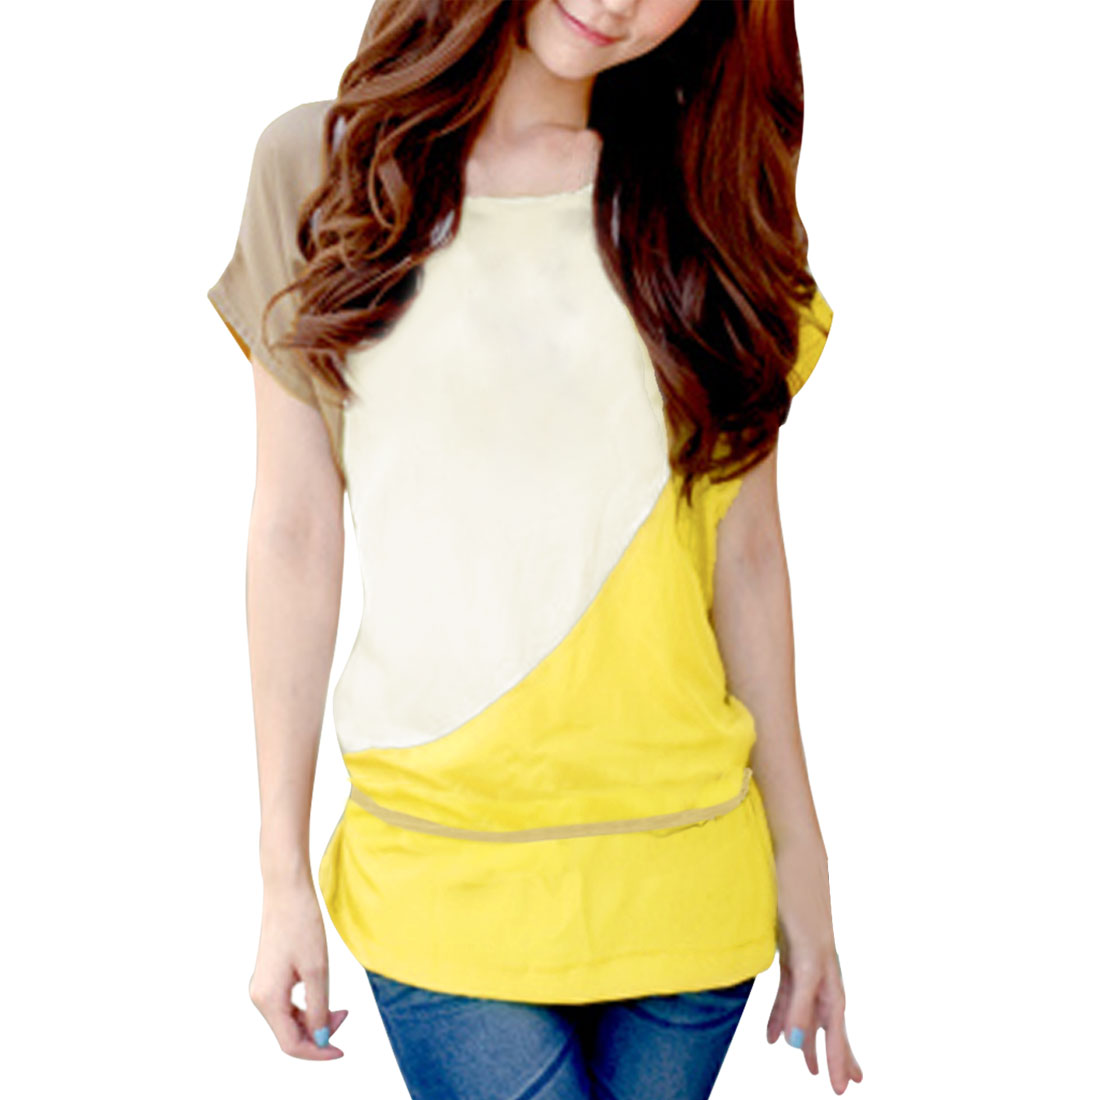 Allegra K Women's Short Sleeve Contrast Tunic Top w Belt Yellow (Size M / 8)